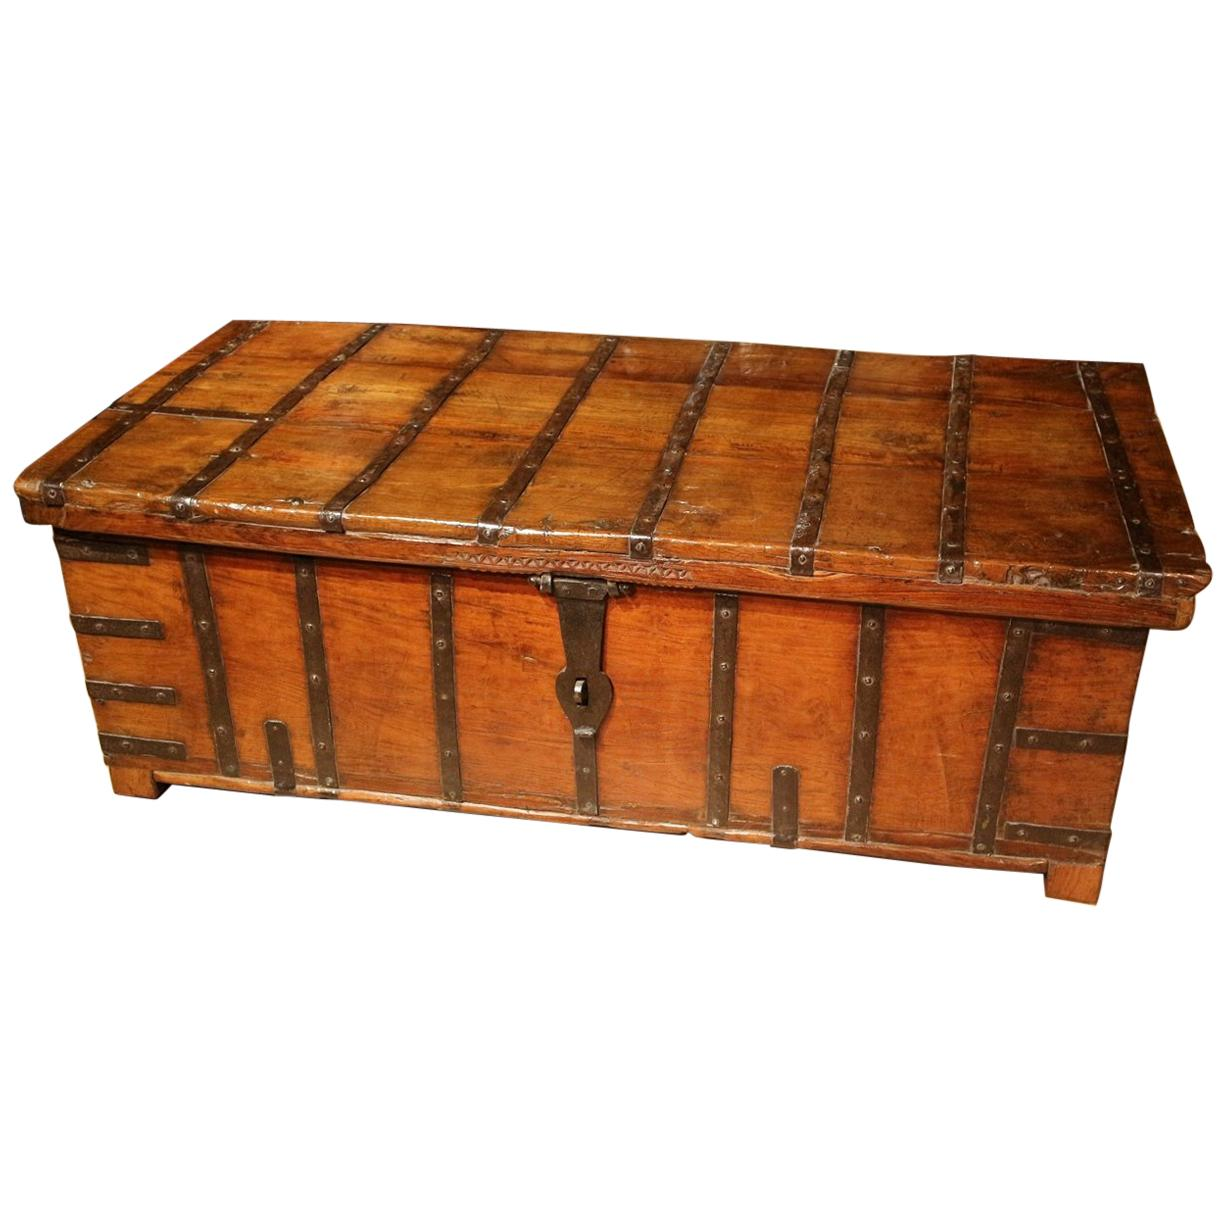 Furniture Early 19th Century Solid Teak Indian Low Table